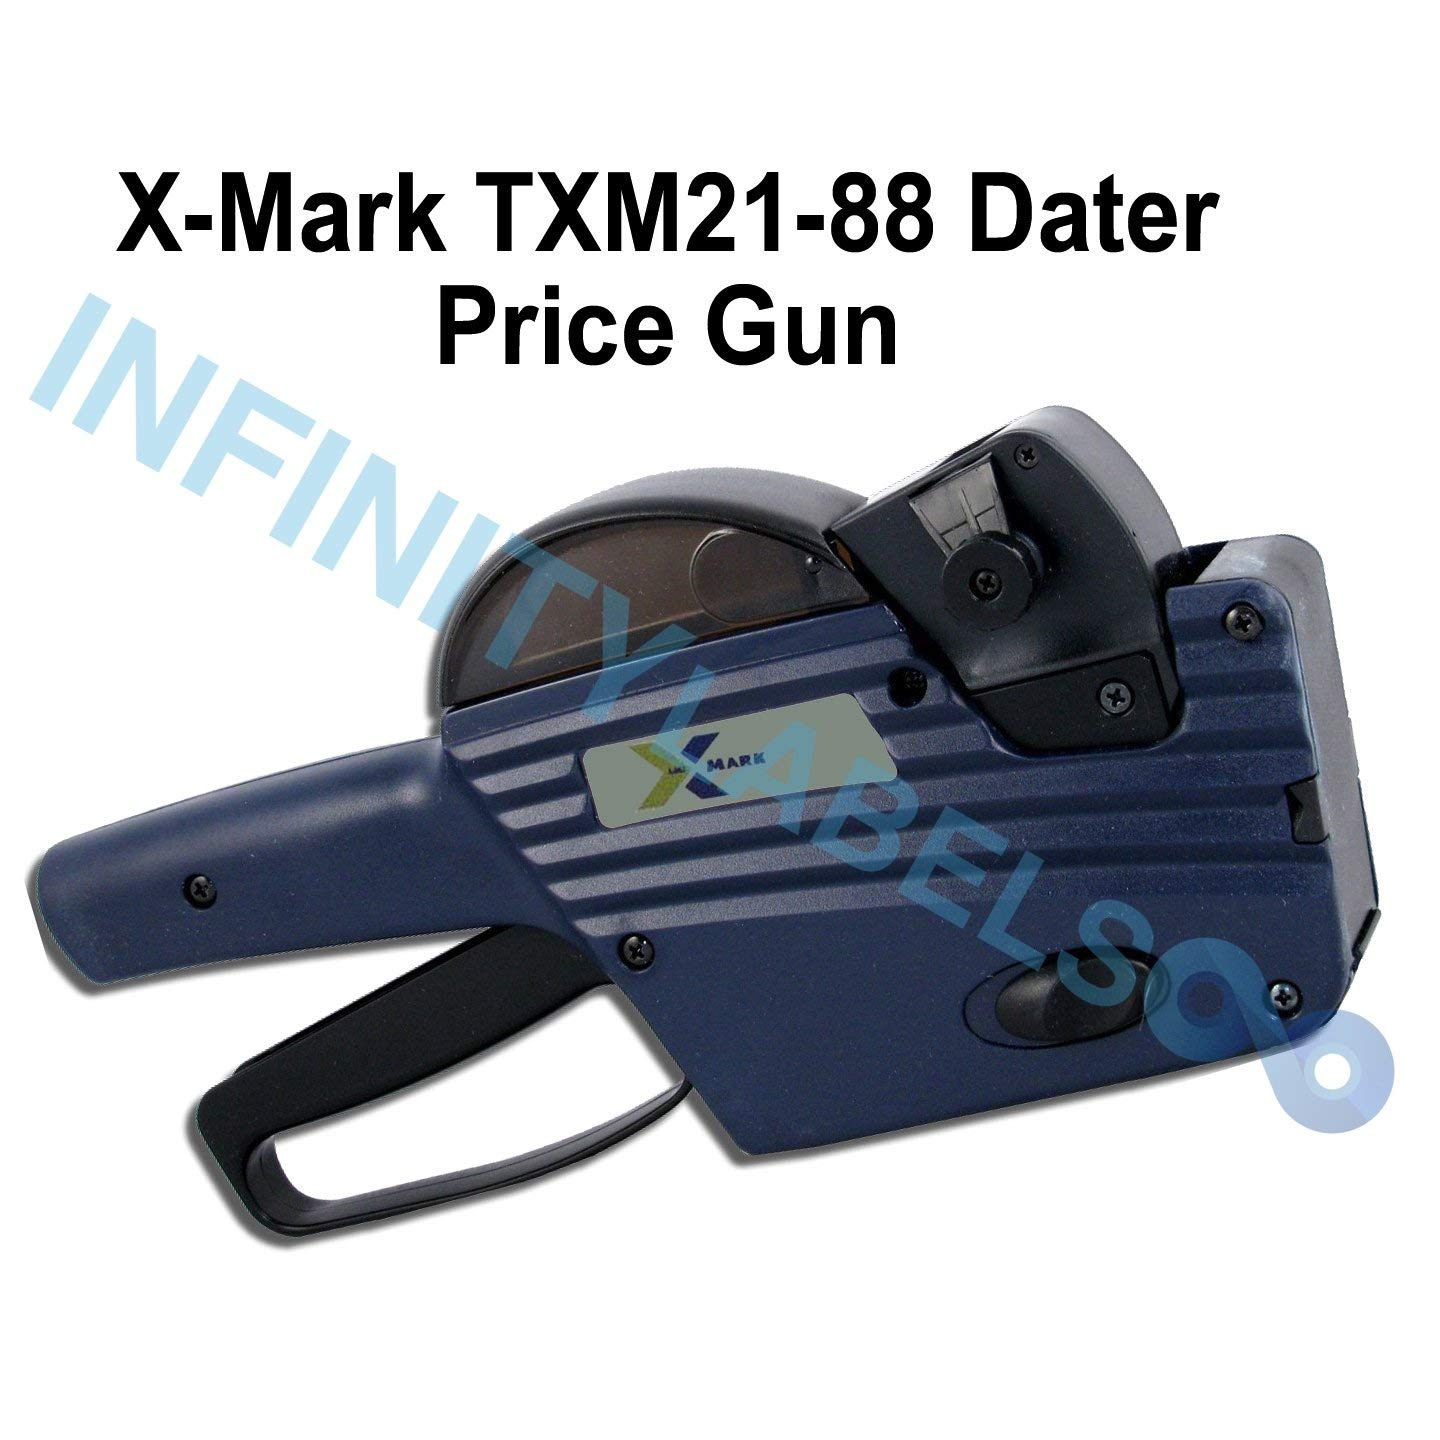 X-Mark Price Gun: TXM21-88DATER [2 Line / 8/8 Characters] by Infinity Labels